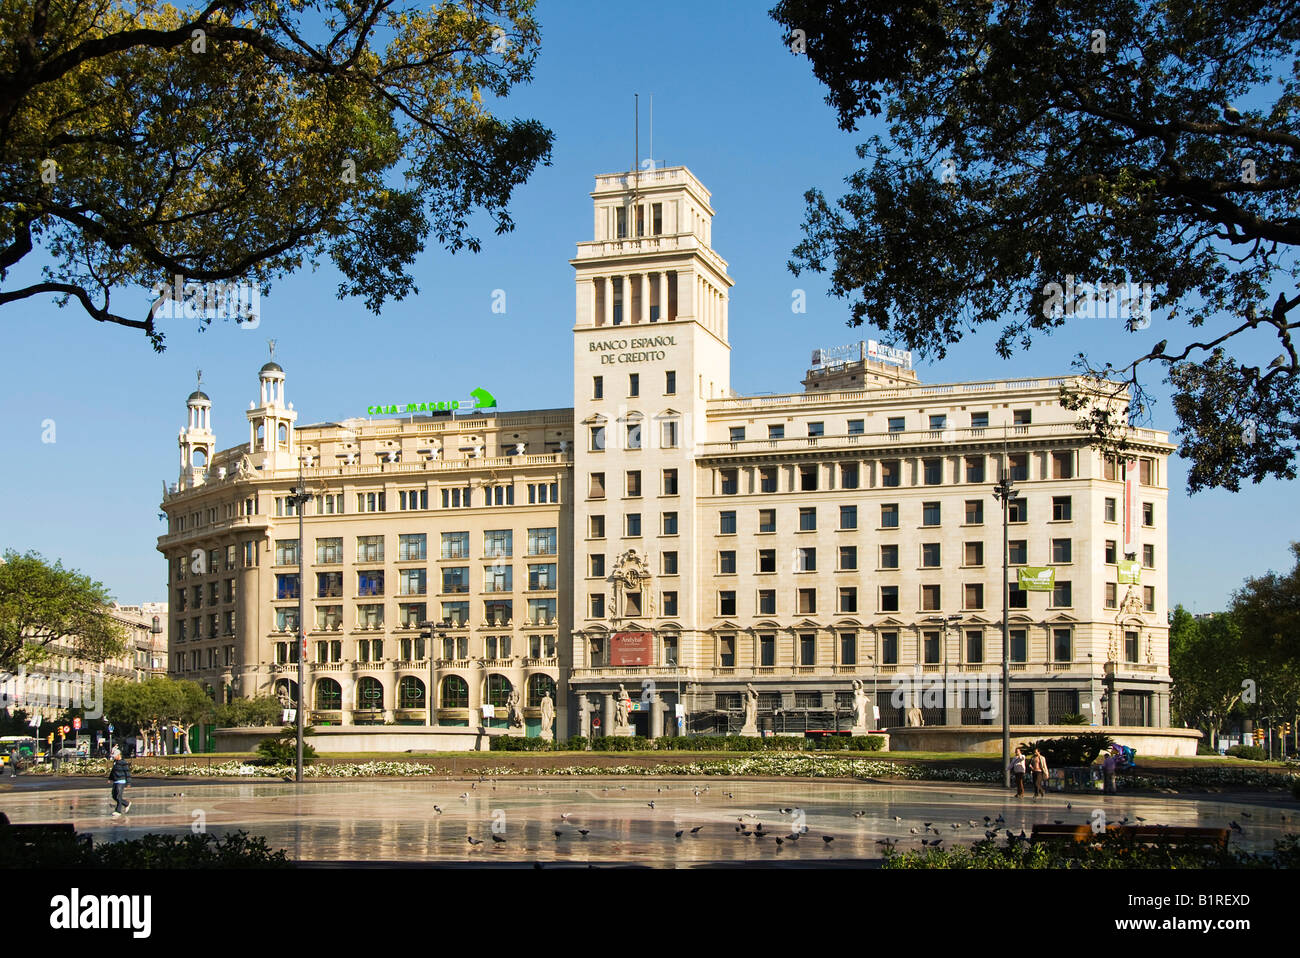 Banco Español de Crédito, Spagnolo Credit Bank building in Placa de Catalunya, quartiere Eixample, Barcellona, Immagini Stock